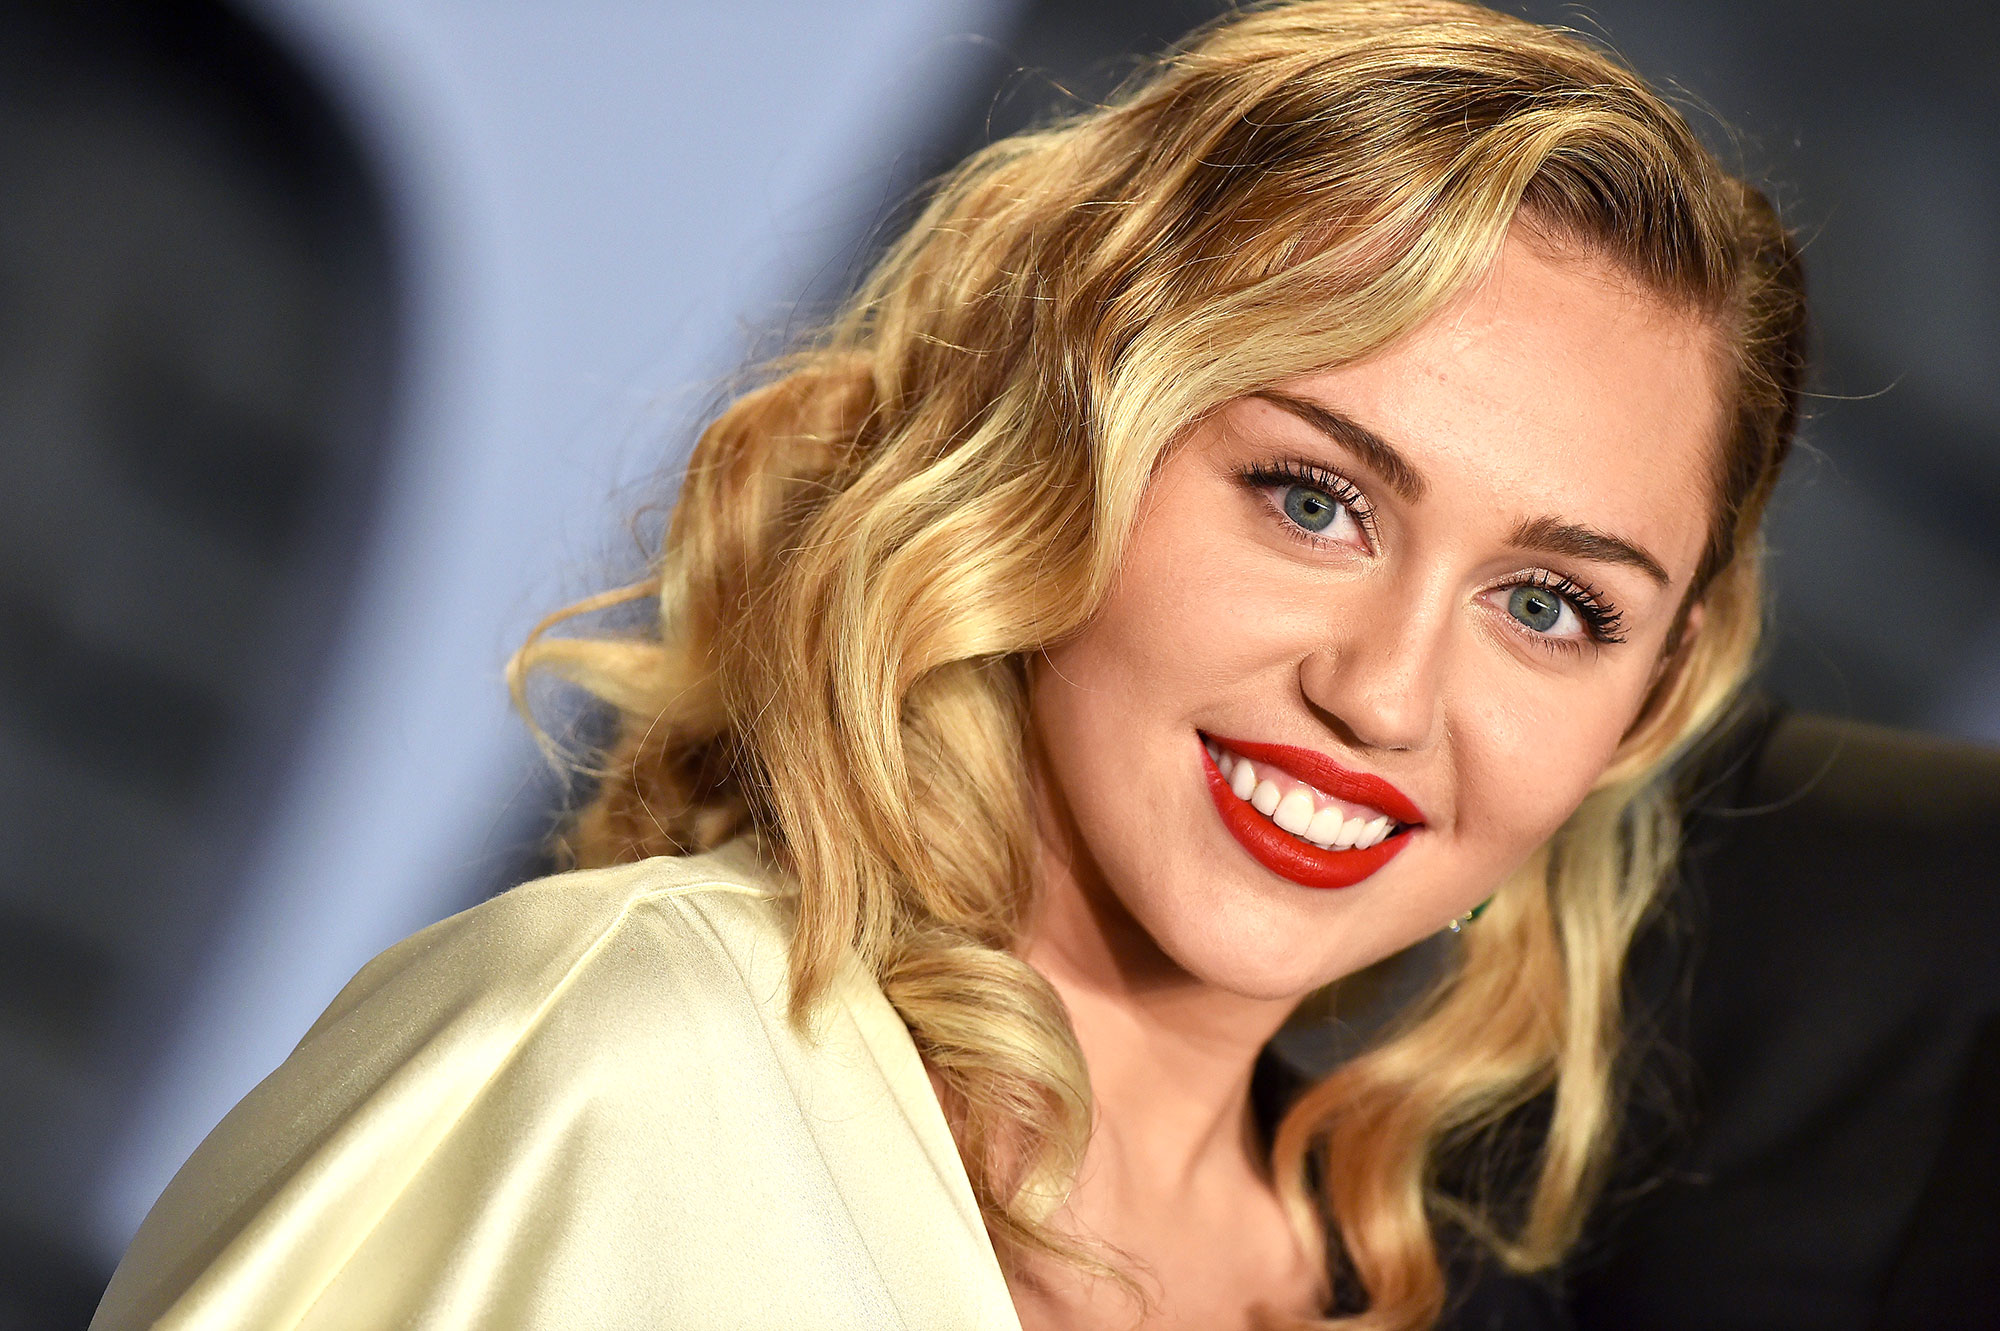 Miley cyrus dating history list